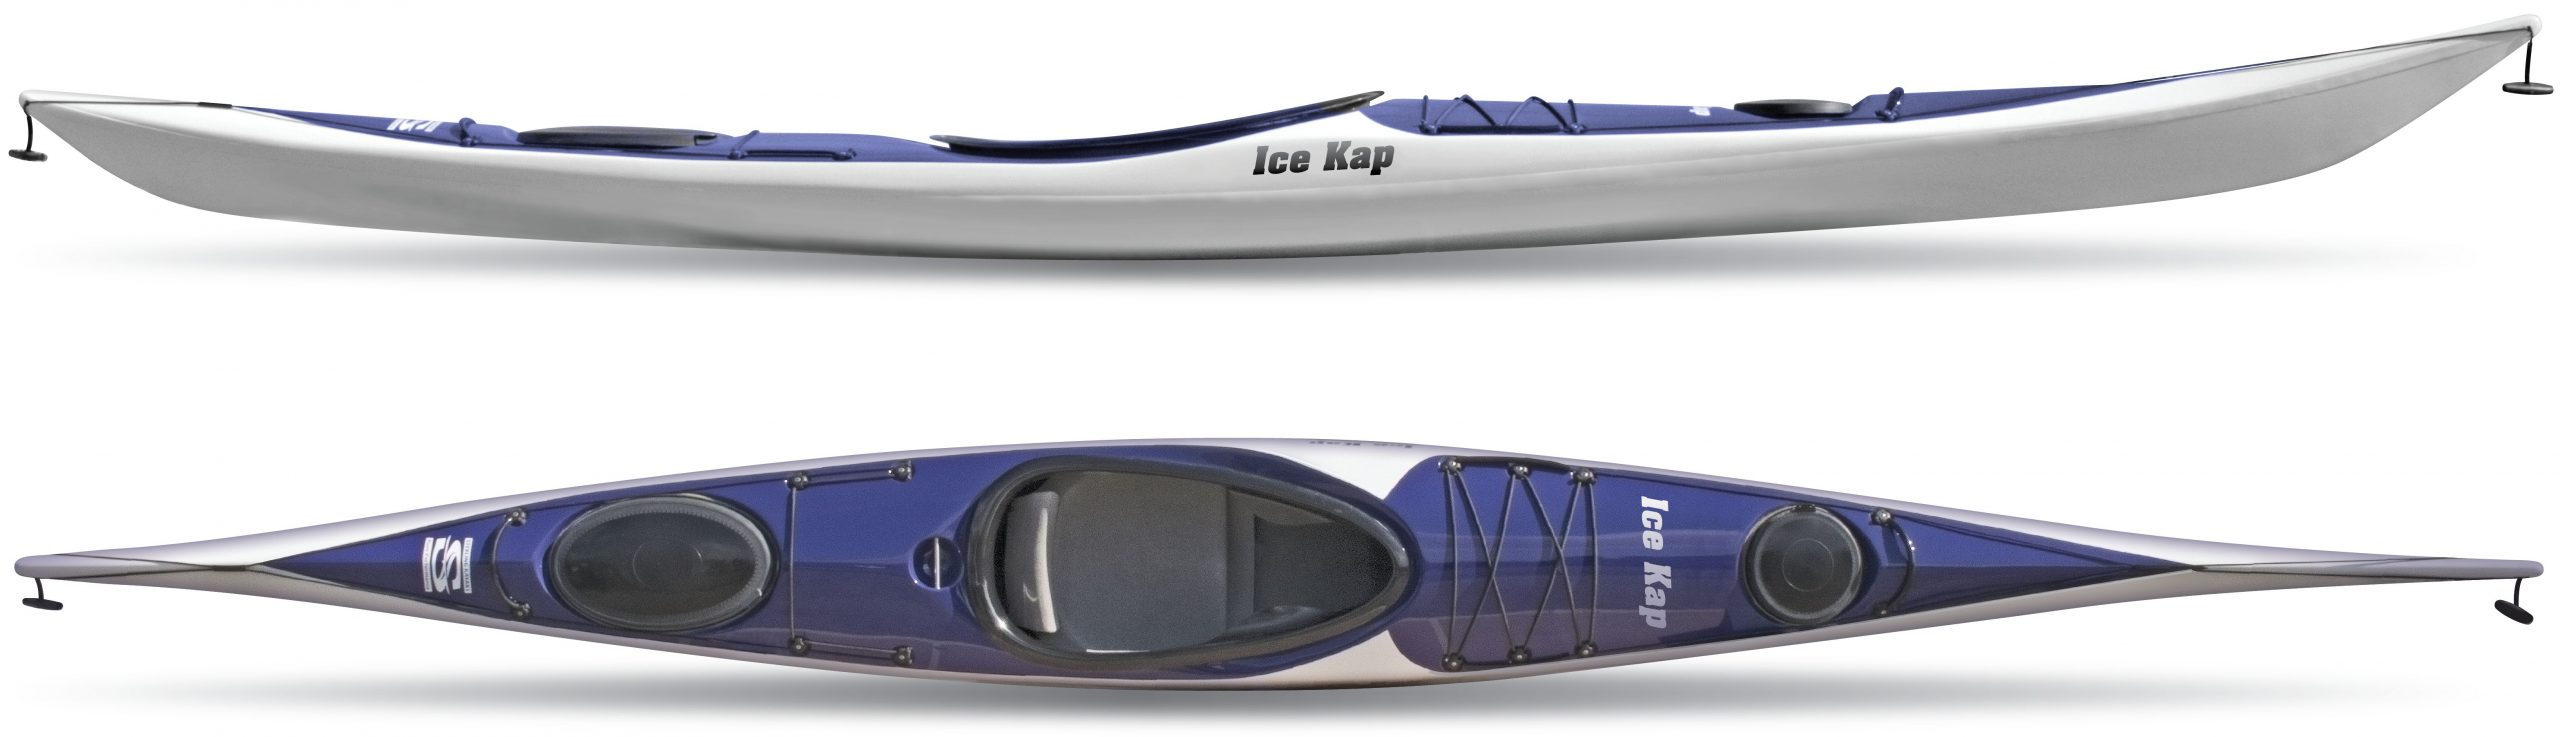 Ice Kap Pure Performance Kayaks